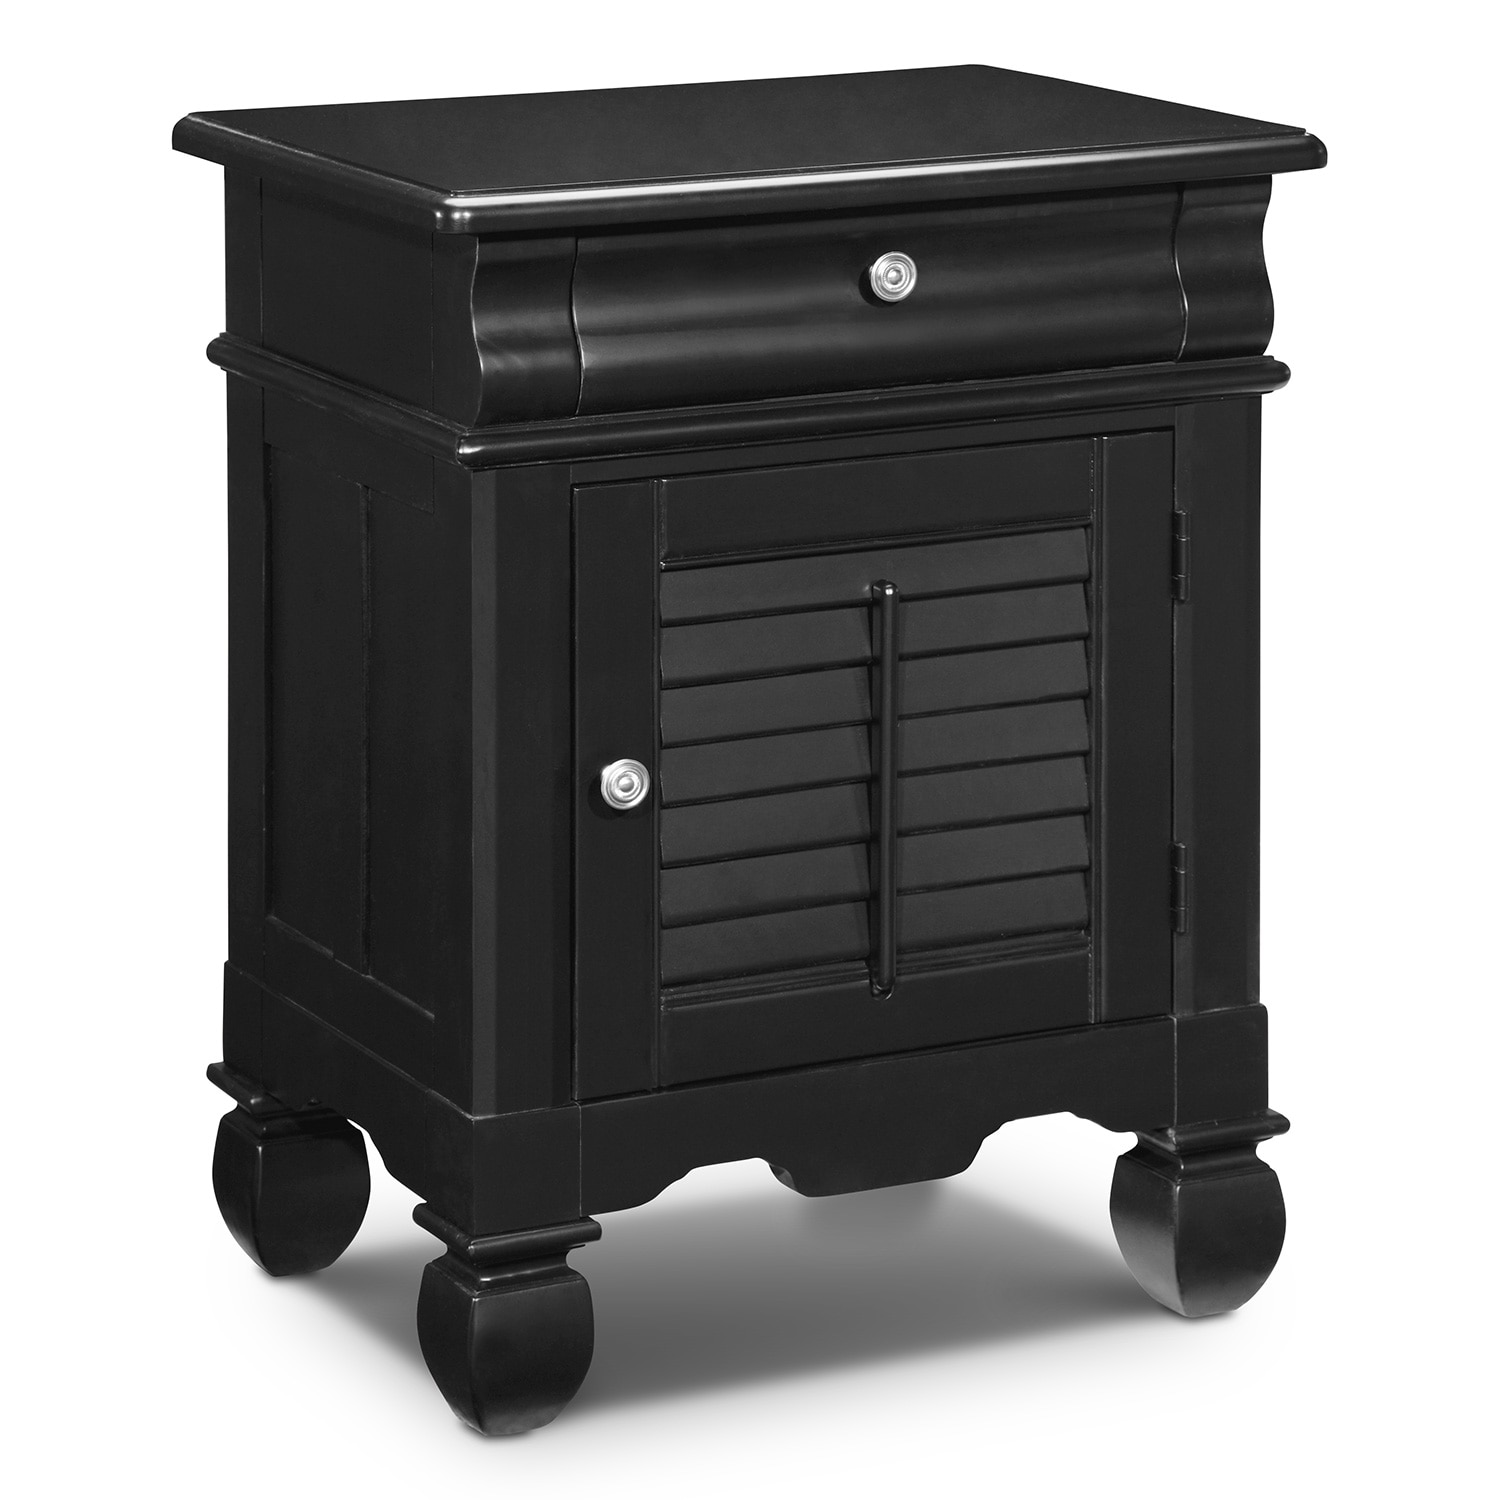 Bedroom Furniture - Plantation Cove Door Nightstand - Black